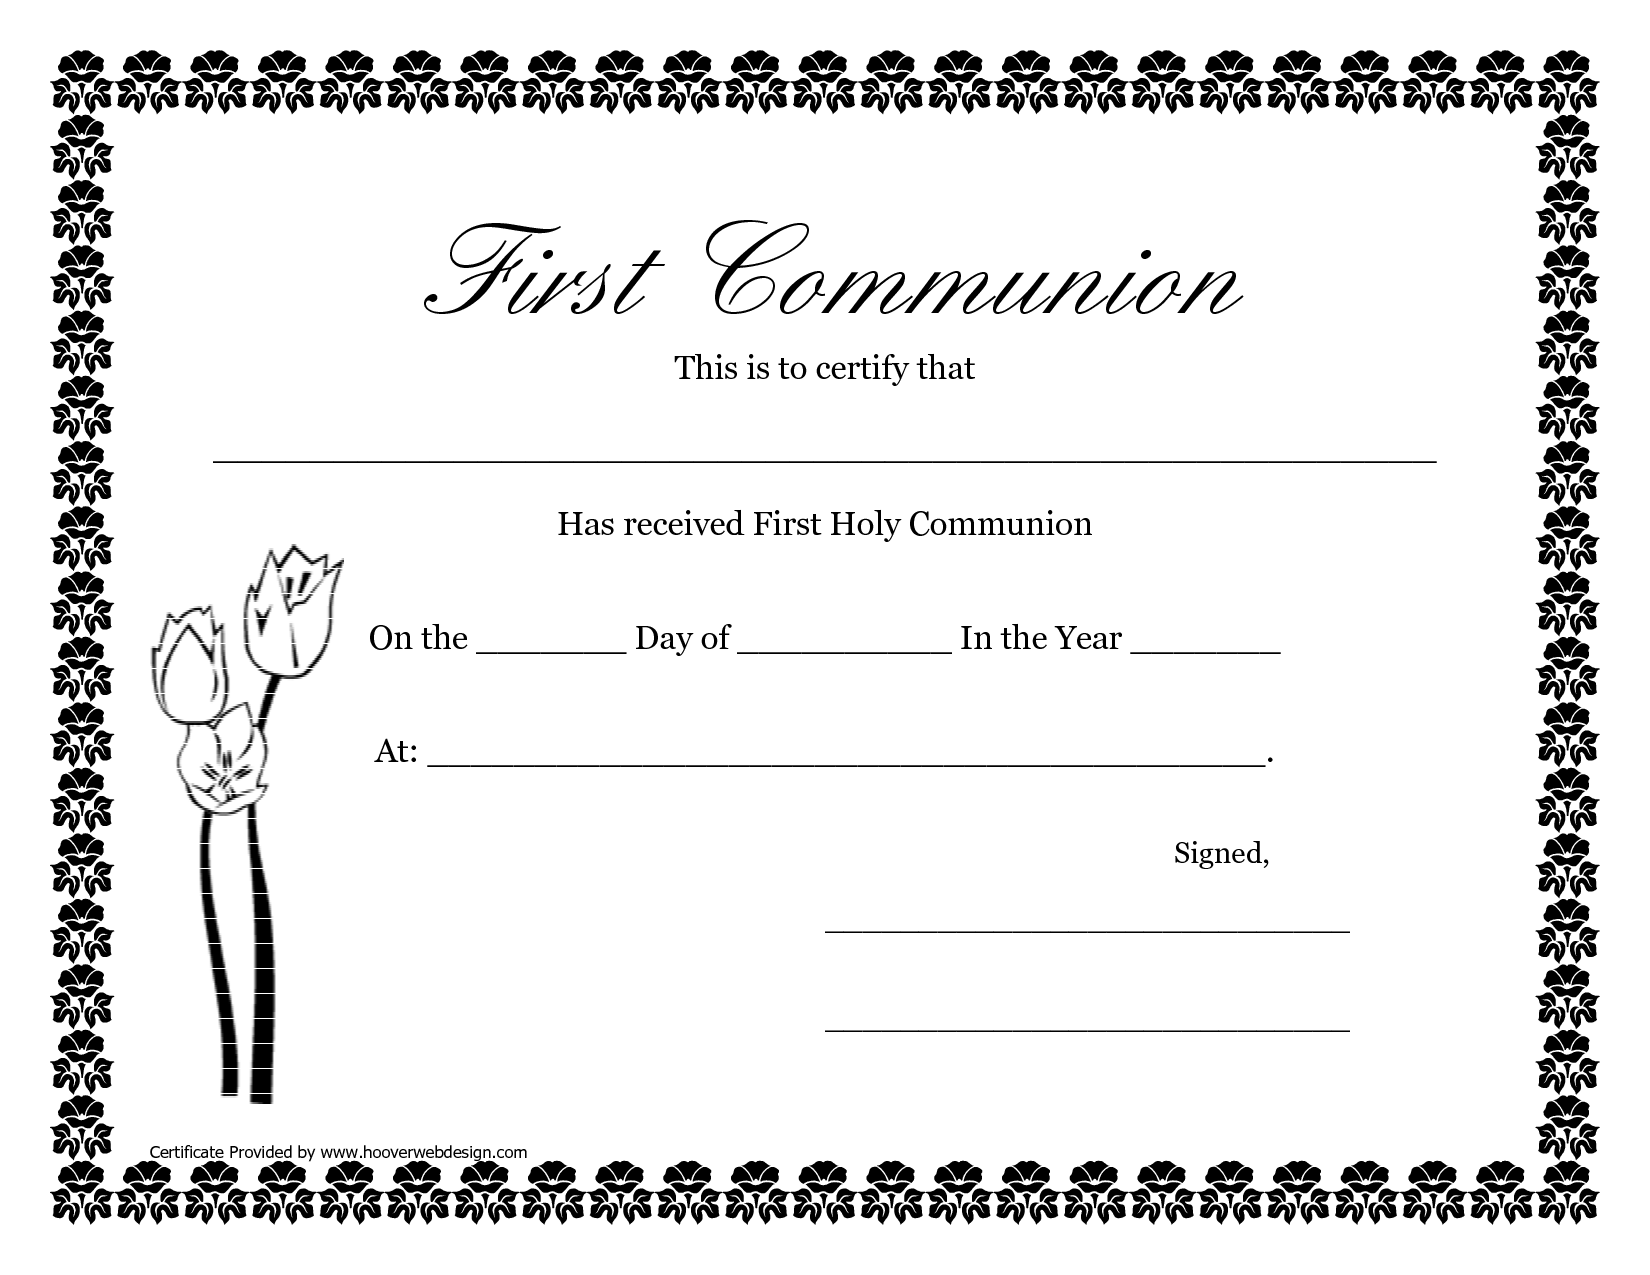 First Communion Banner Templates | Printable First Communion ...